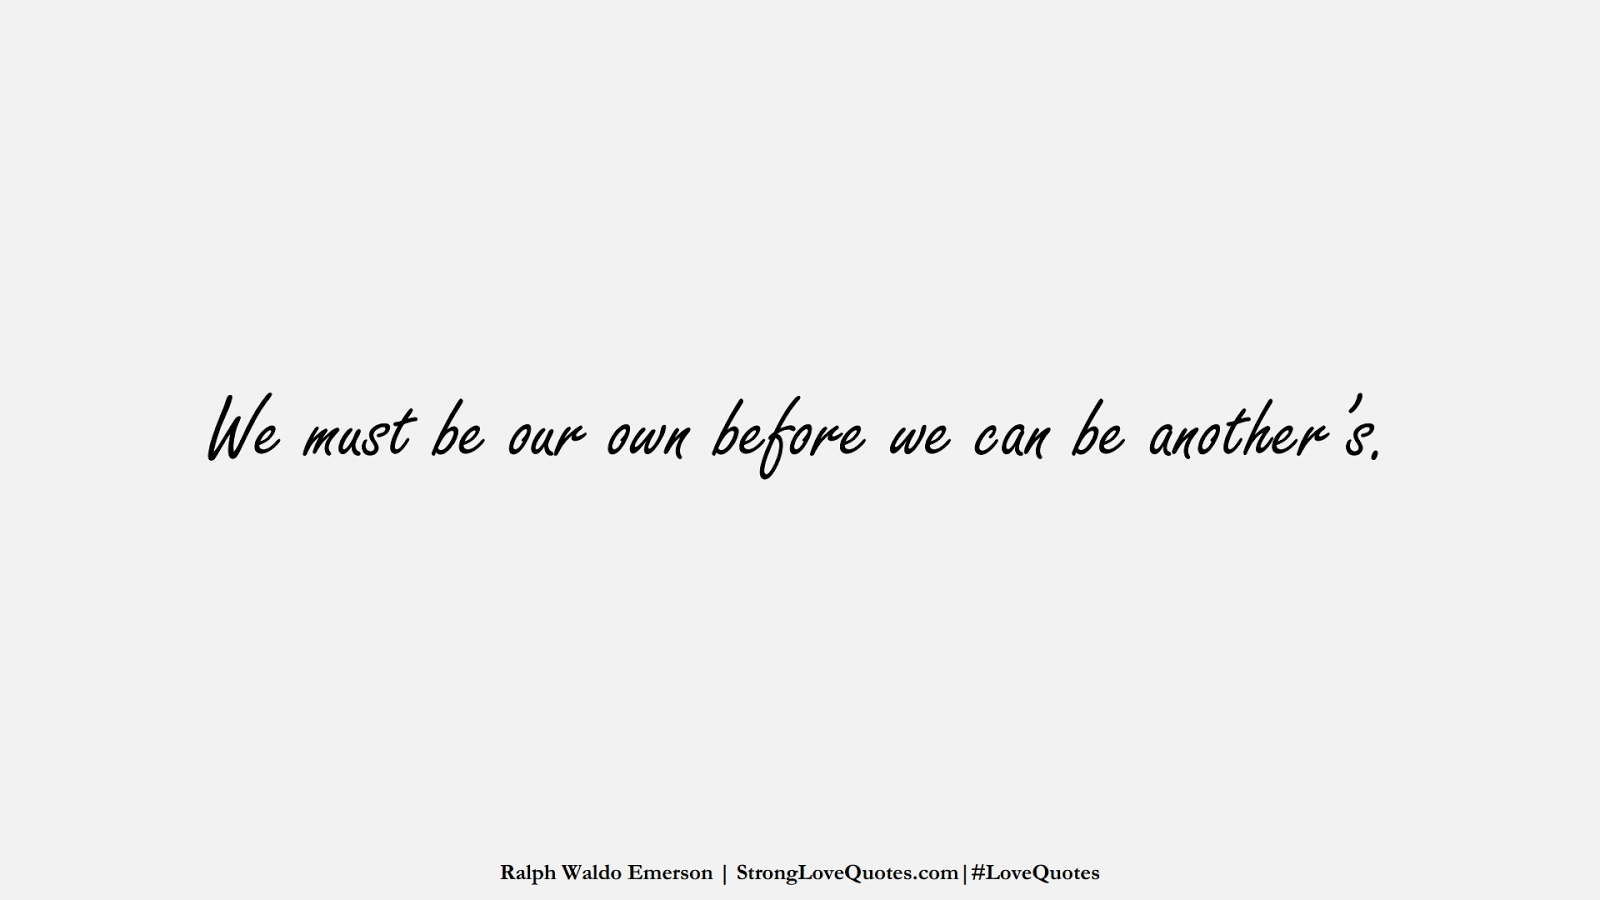 We must be our own before we can be another's. (Ralph Waldo Emerson);  #LoveQuotes